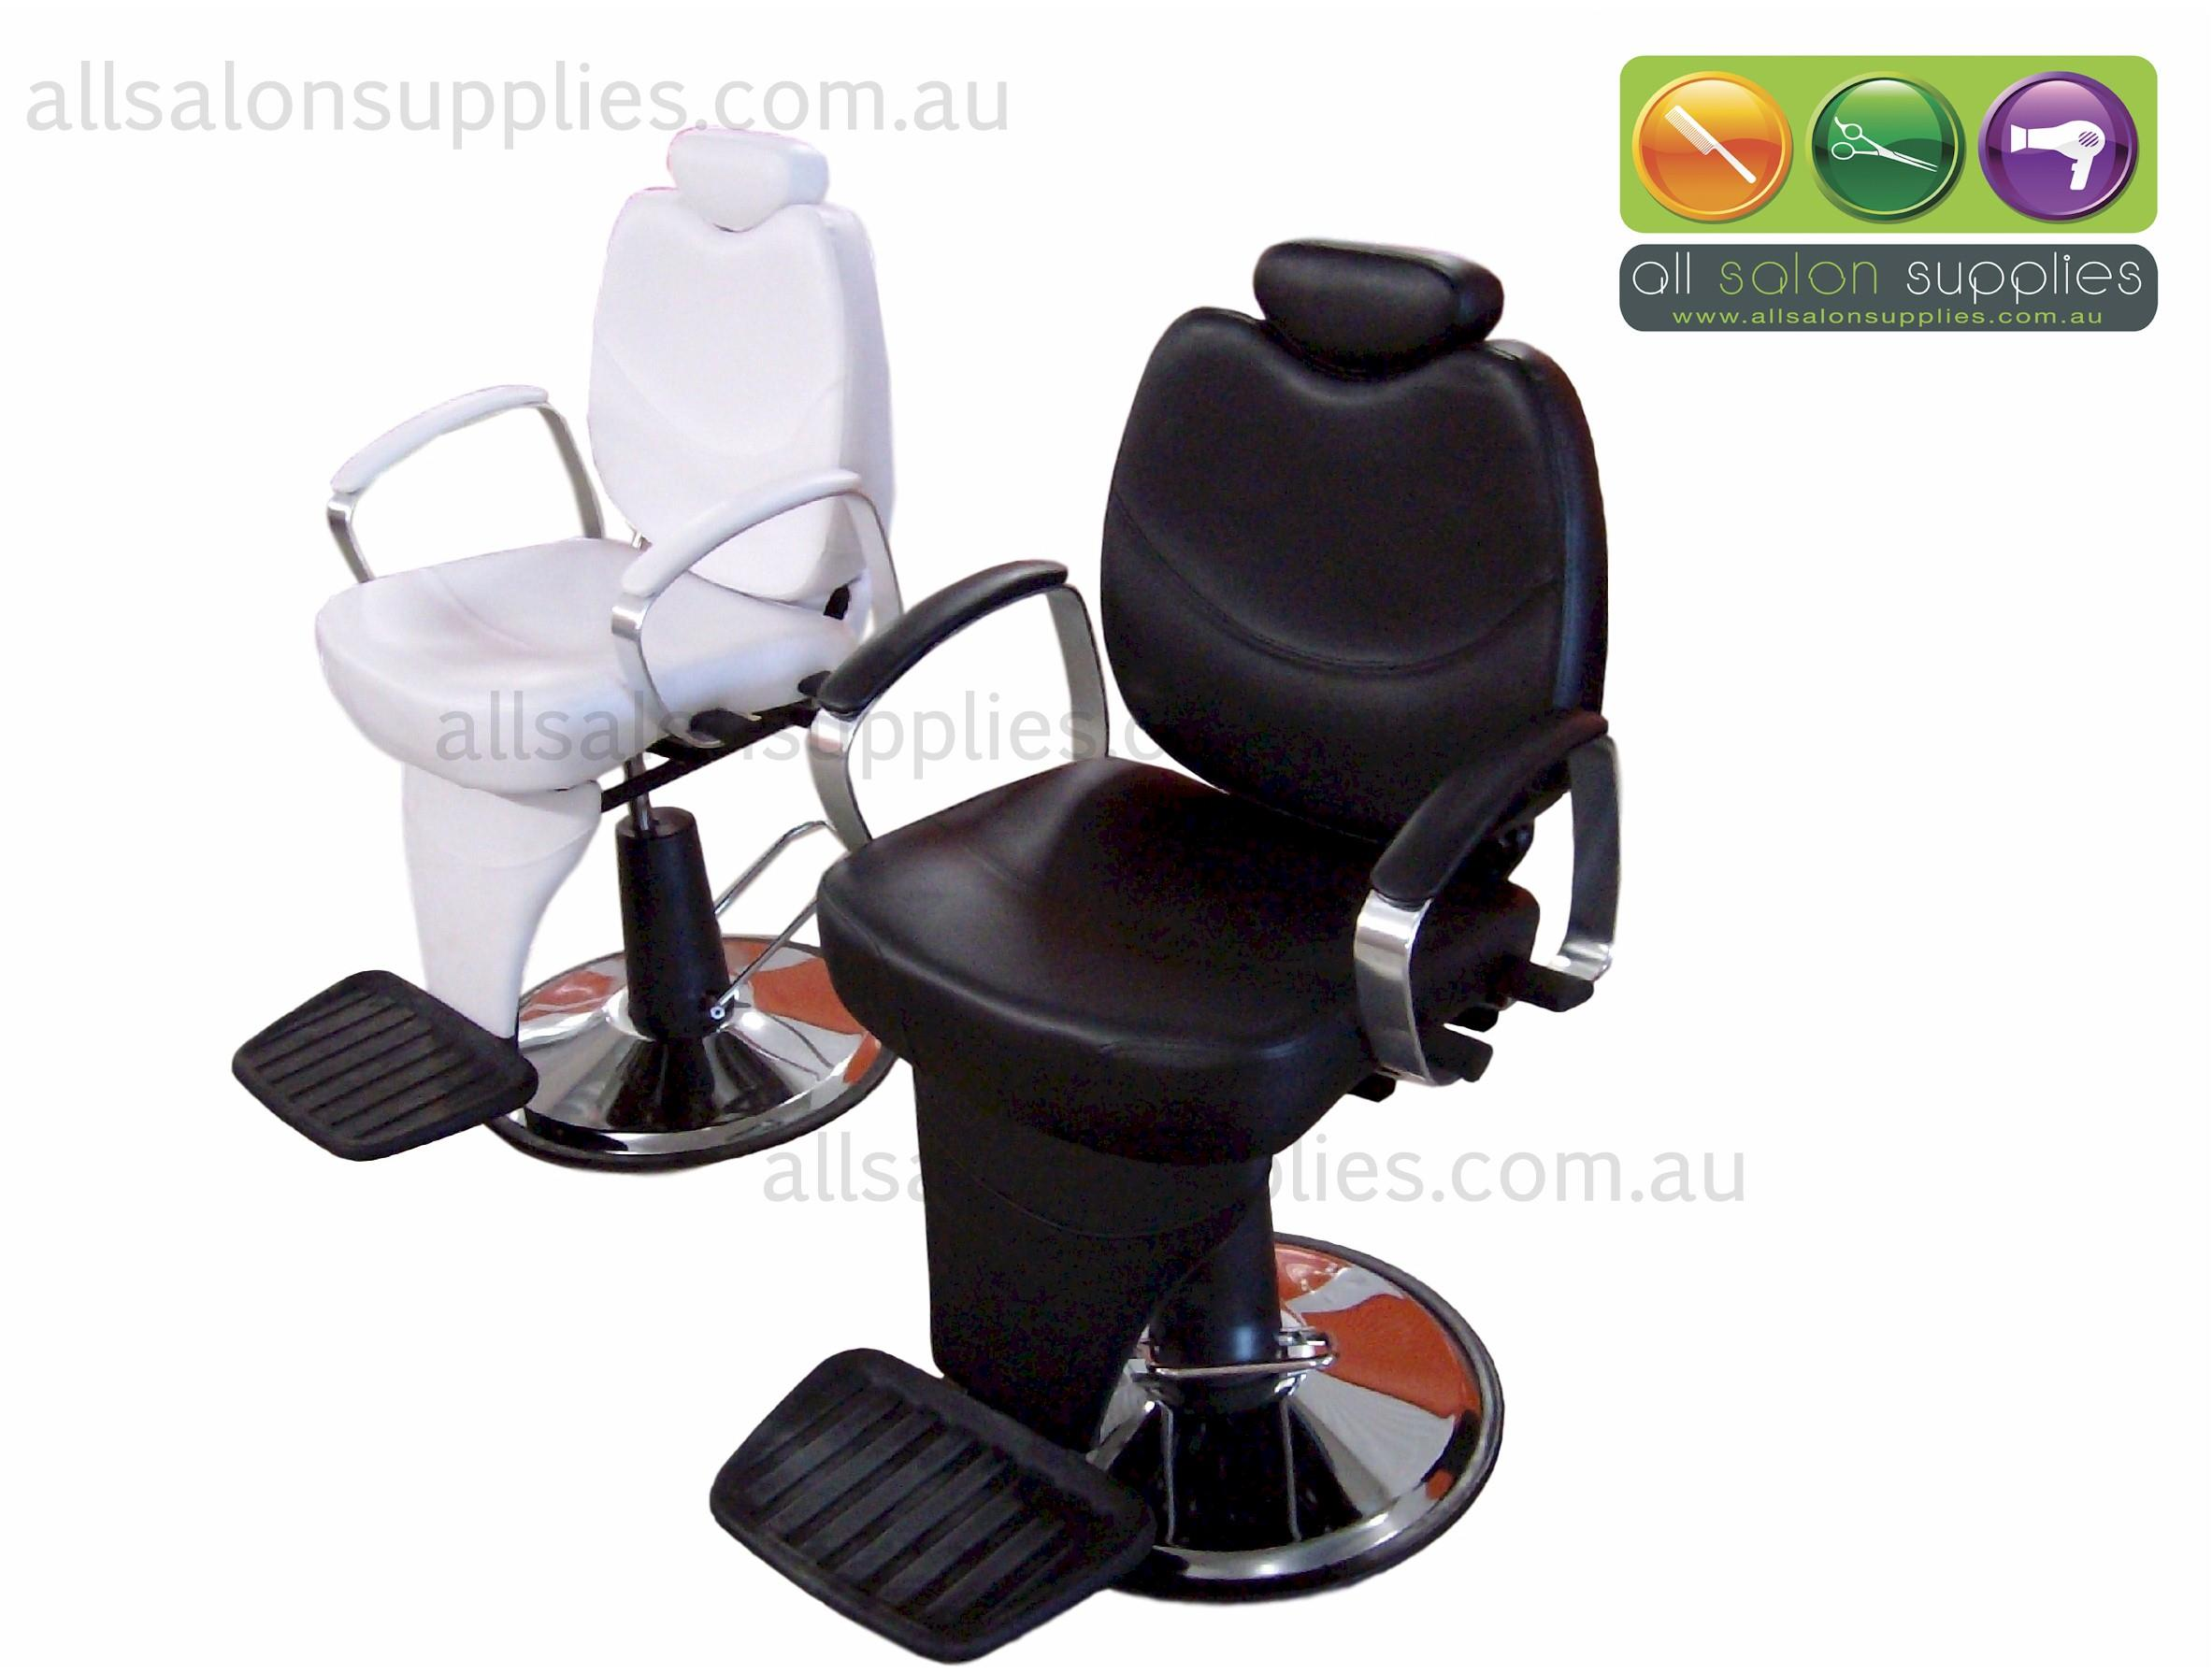 """THE TOSCANA"""" LAST ONE BE QUICK Stunning BARBER CHAIR new design"""